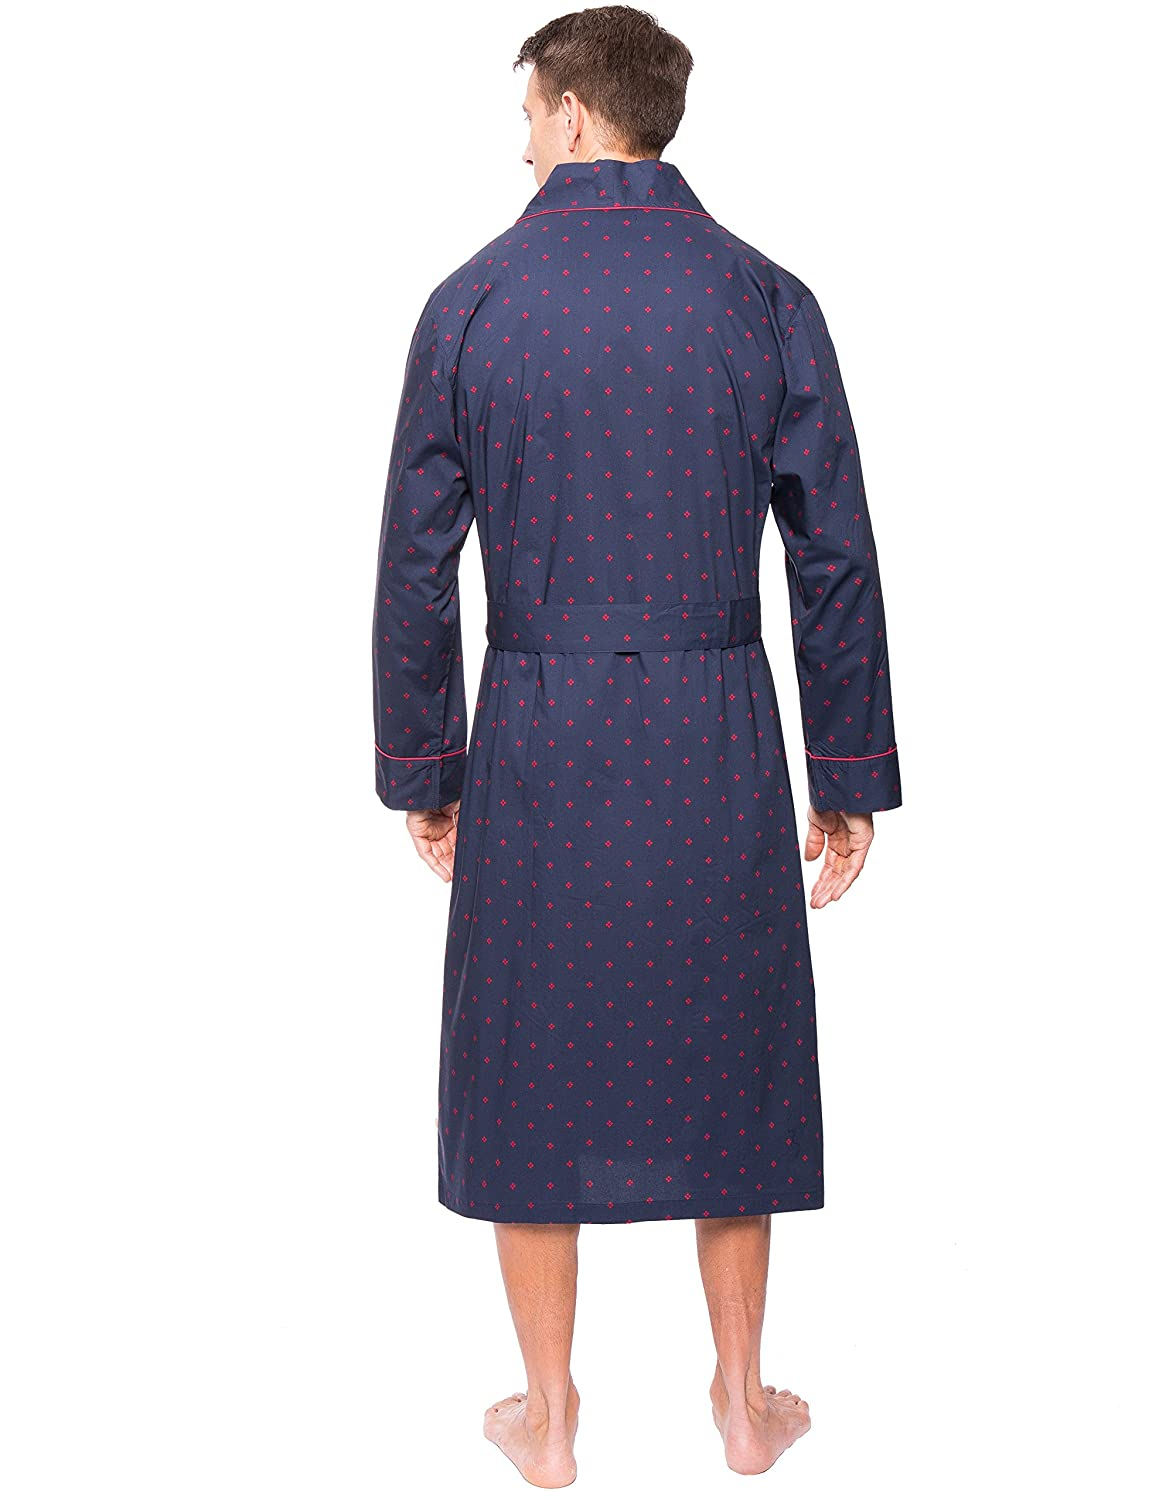 Noble Mount Men s Cotton Robe - Diamond Checks Black Red - S M at Amazon  Men s Clothing store  d3f3cb4ef